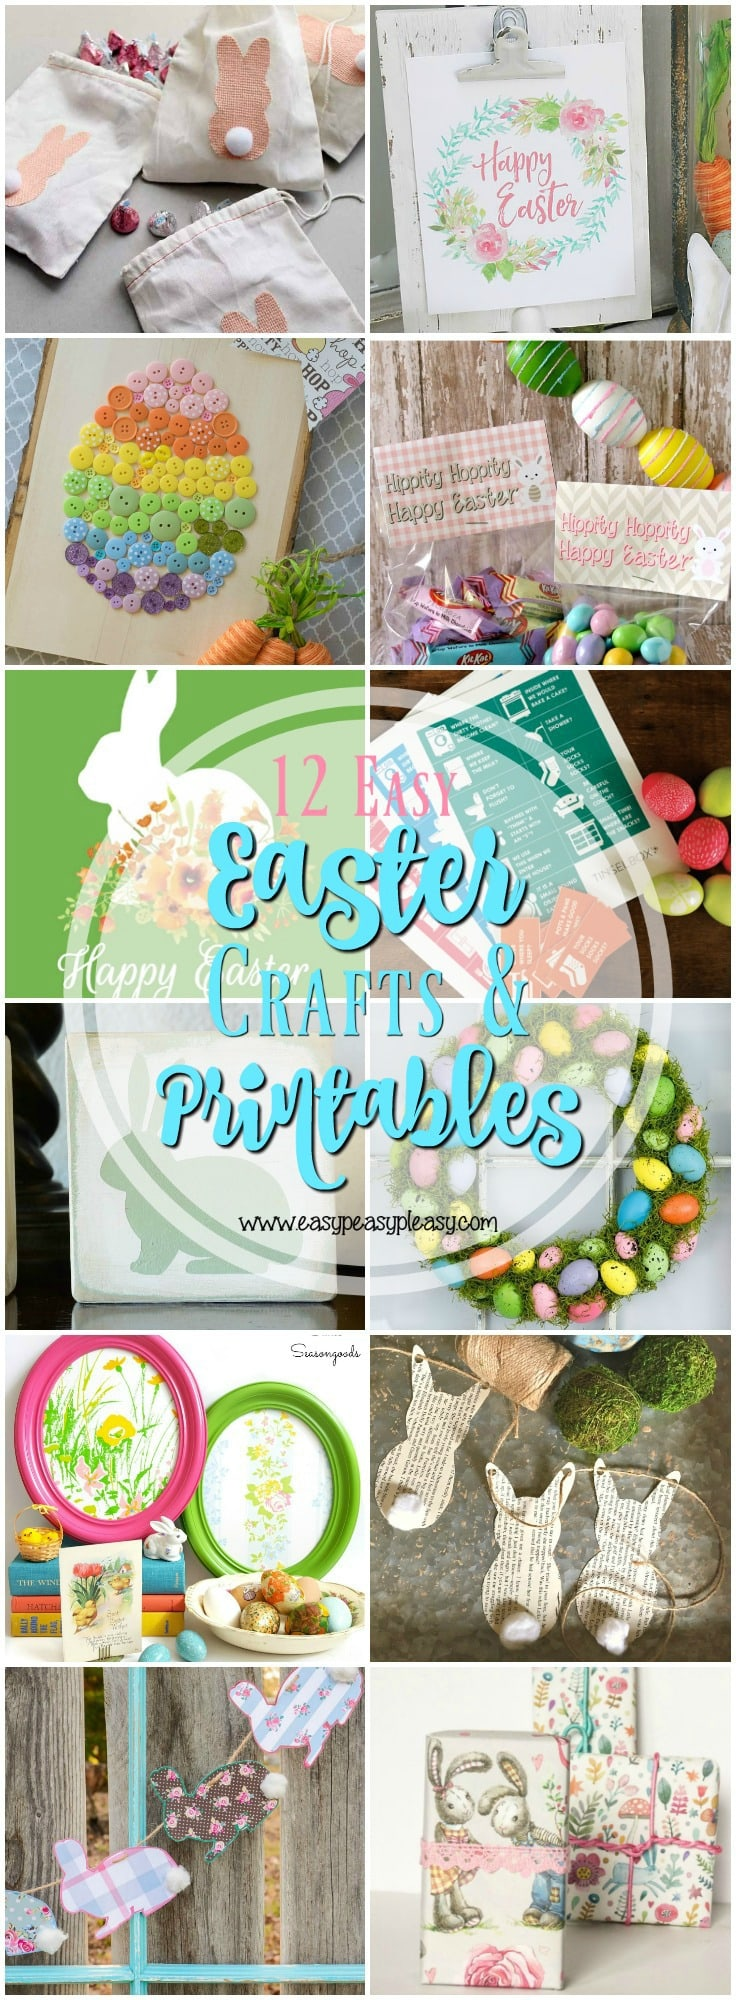 12 Easy Easter Crafts and free Printables